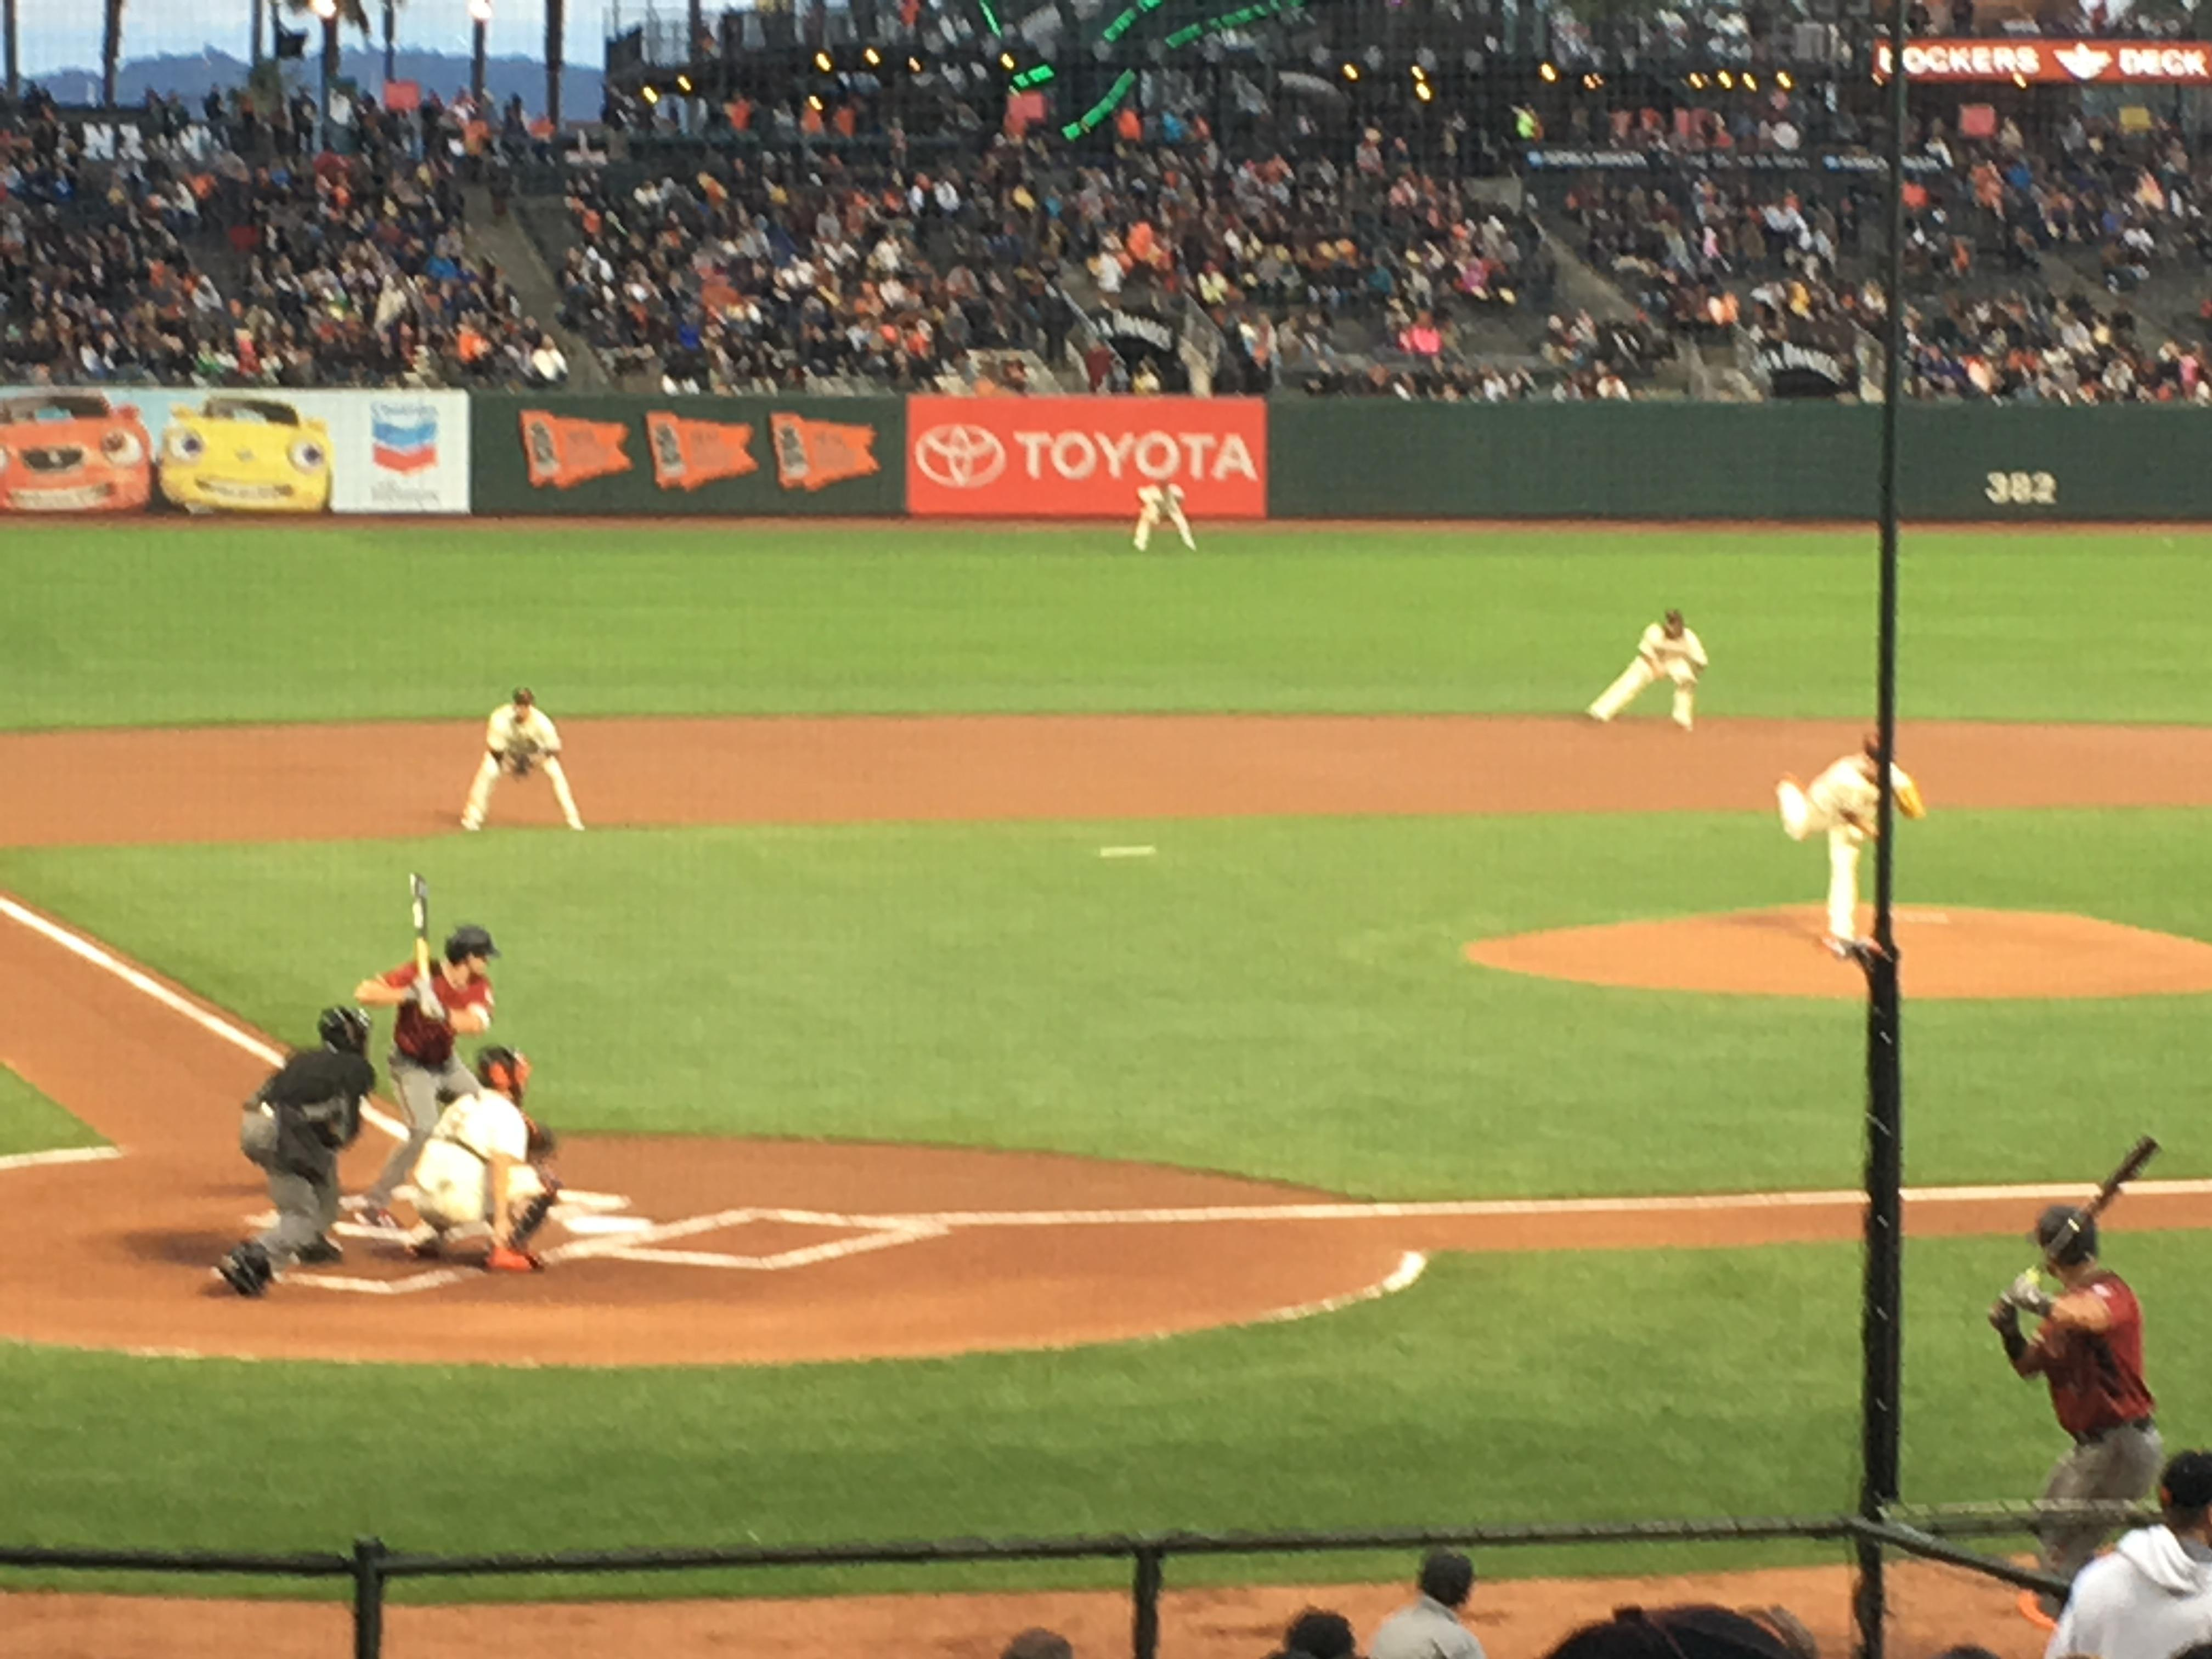 Oracle Park Section 112 Row 24 Seat 15